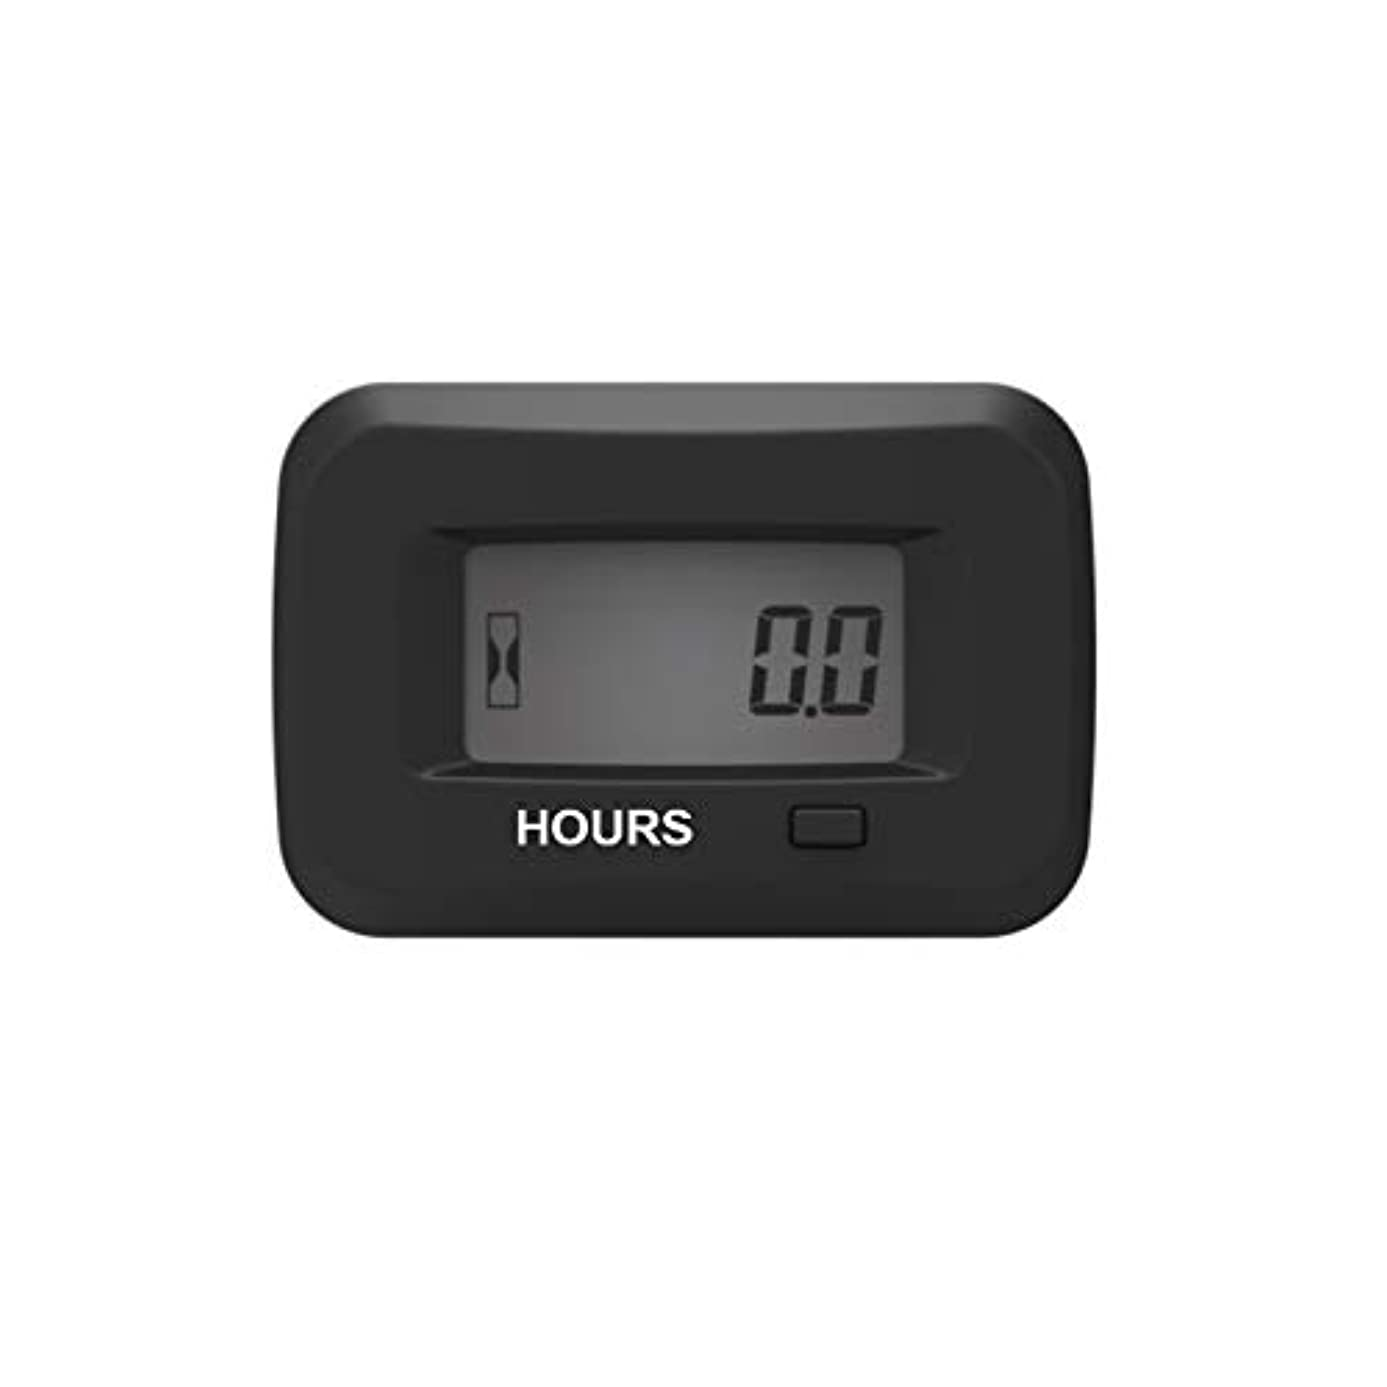 Runleader Digital hour meter service reminder gauge fits Zero Turn lawn mowers of various brands